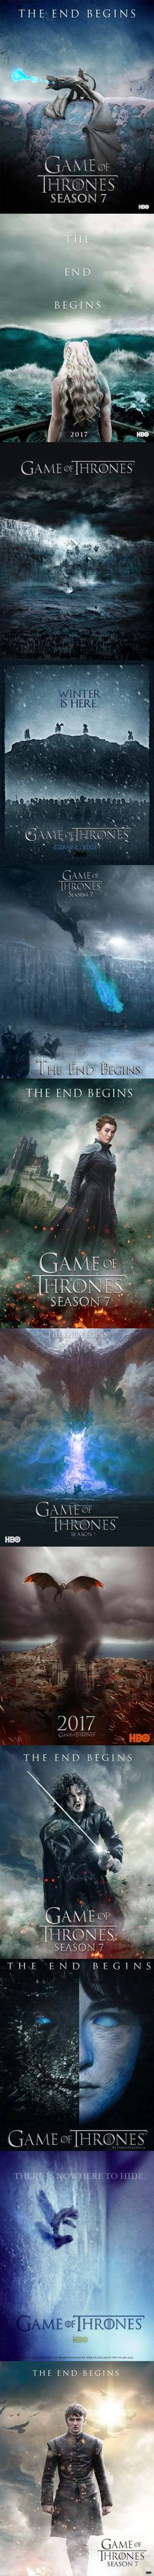 Game of Thrones Season 7 Posters (Fan Made) - The Grumpy Fish